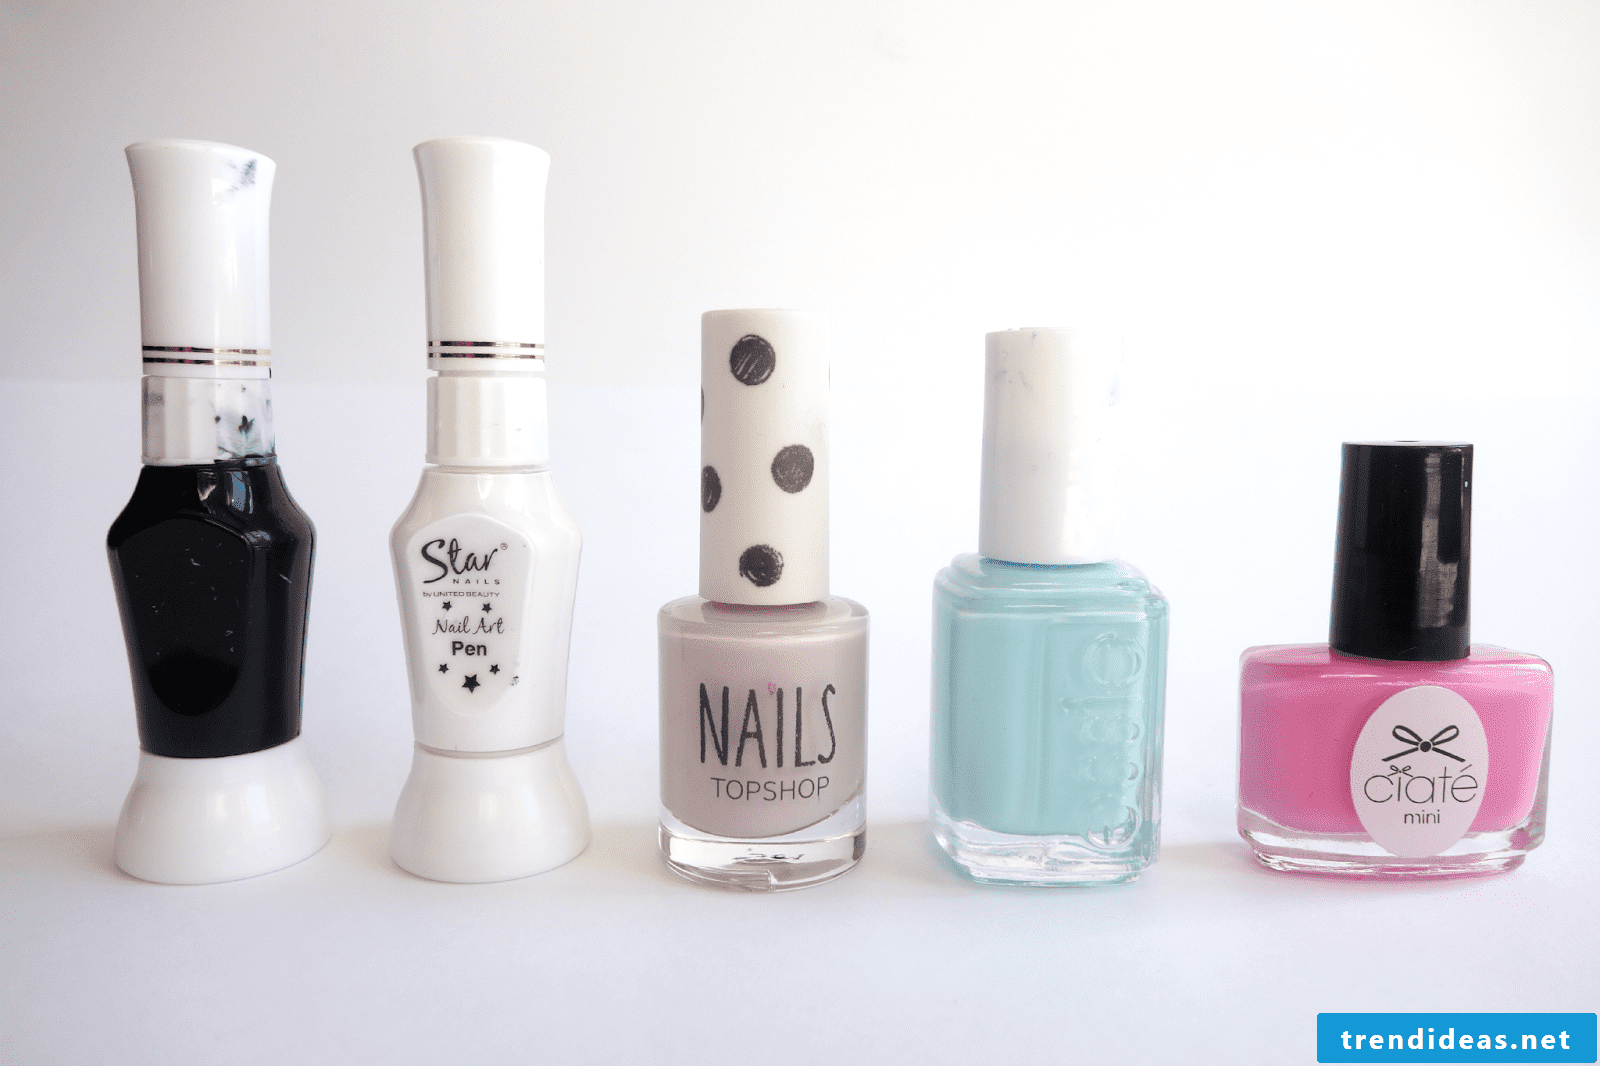 Easter 2018 on the hands - bunny nail art design instruction